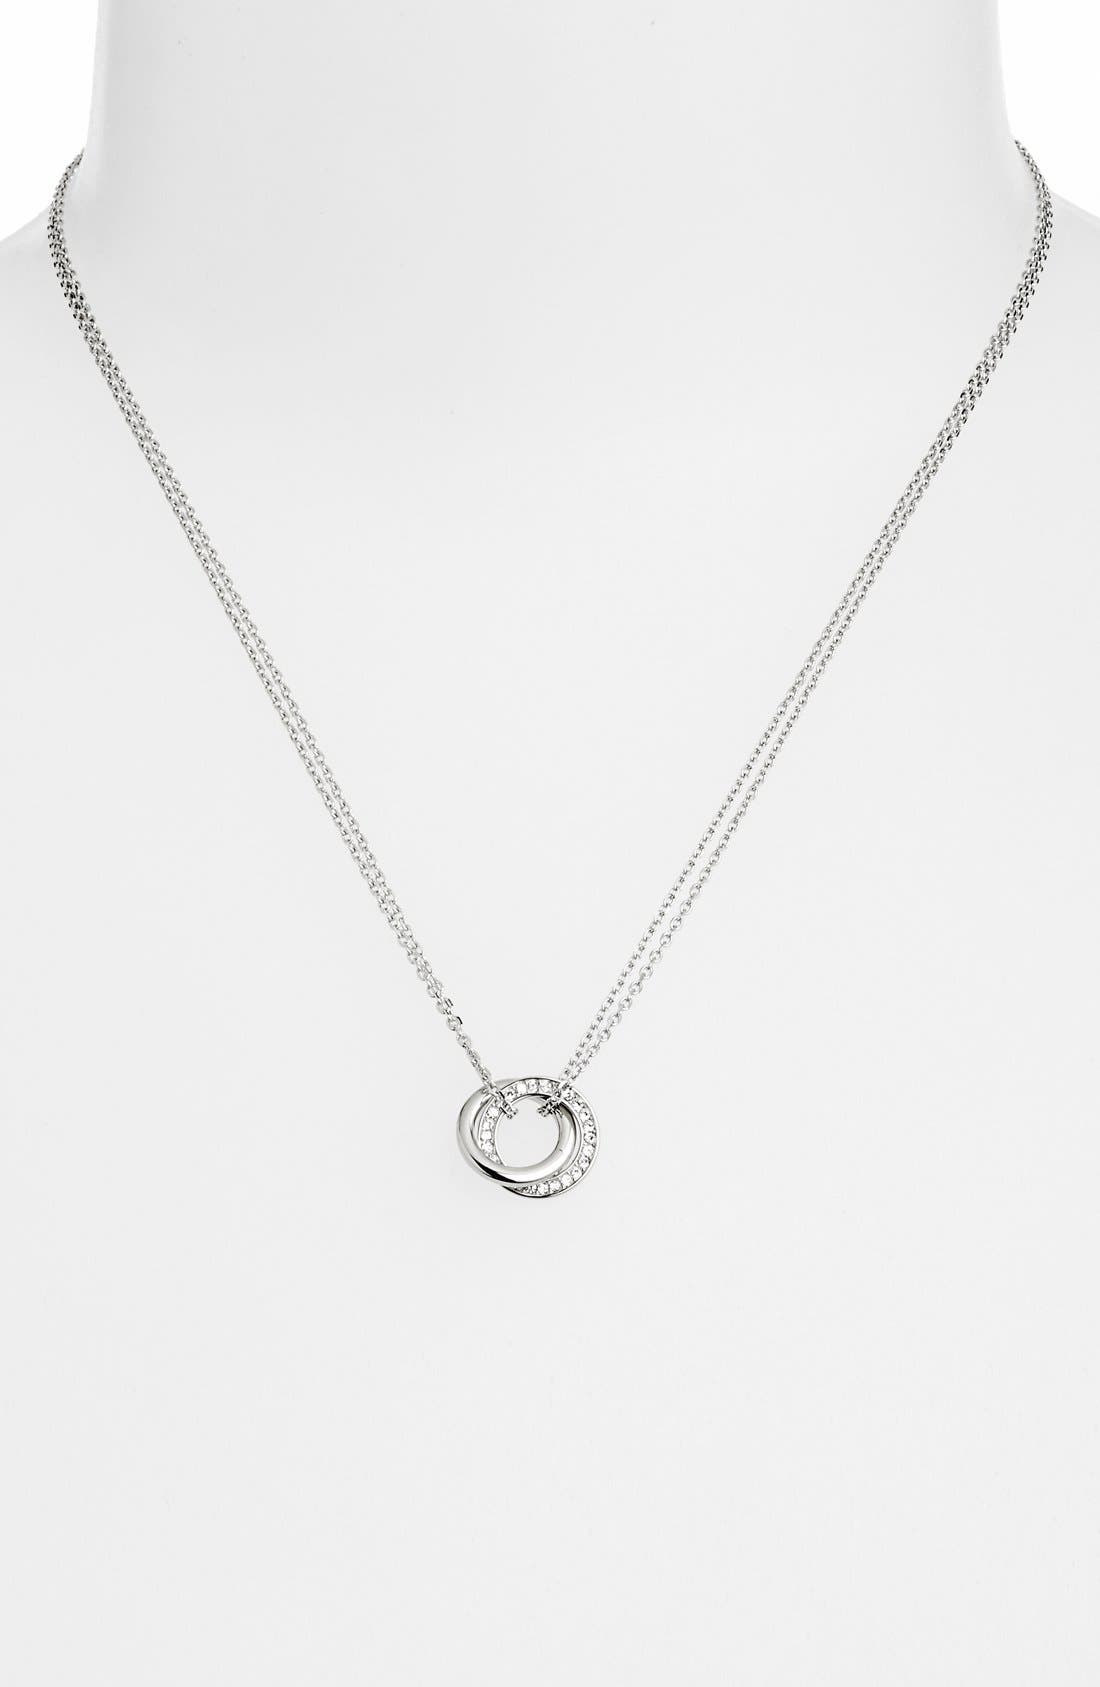 Alternate Image 1 Selected - Michael Kors 'Statement Brilliance' Double Ring Necklace